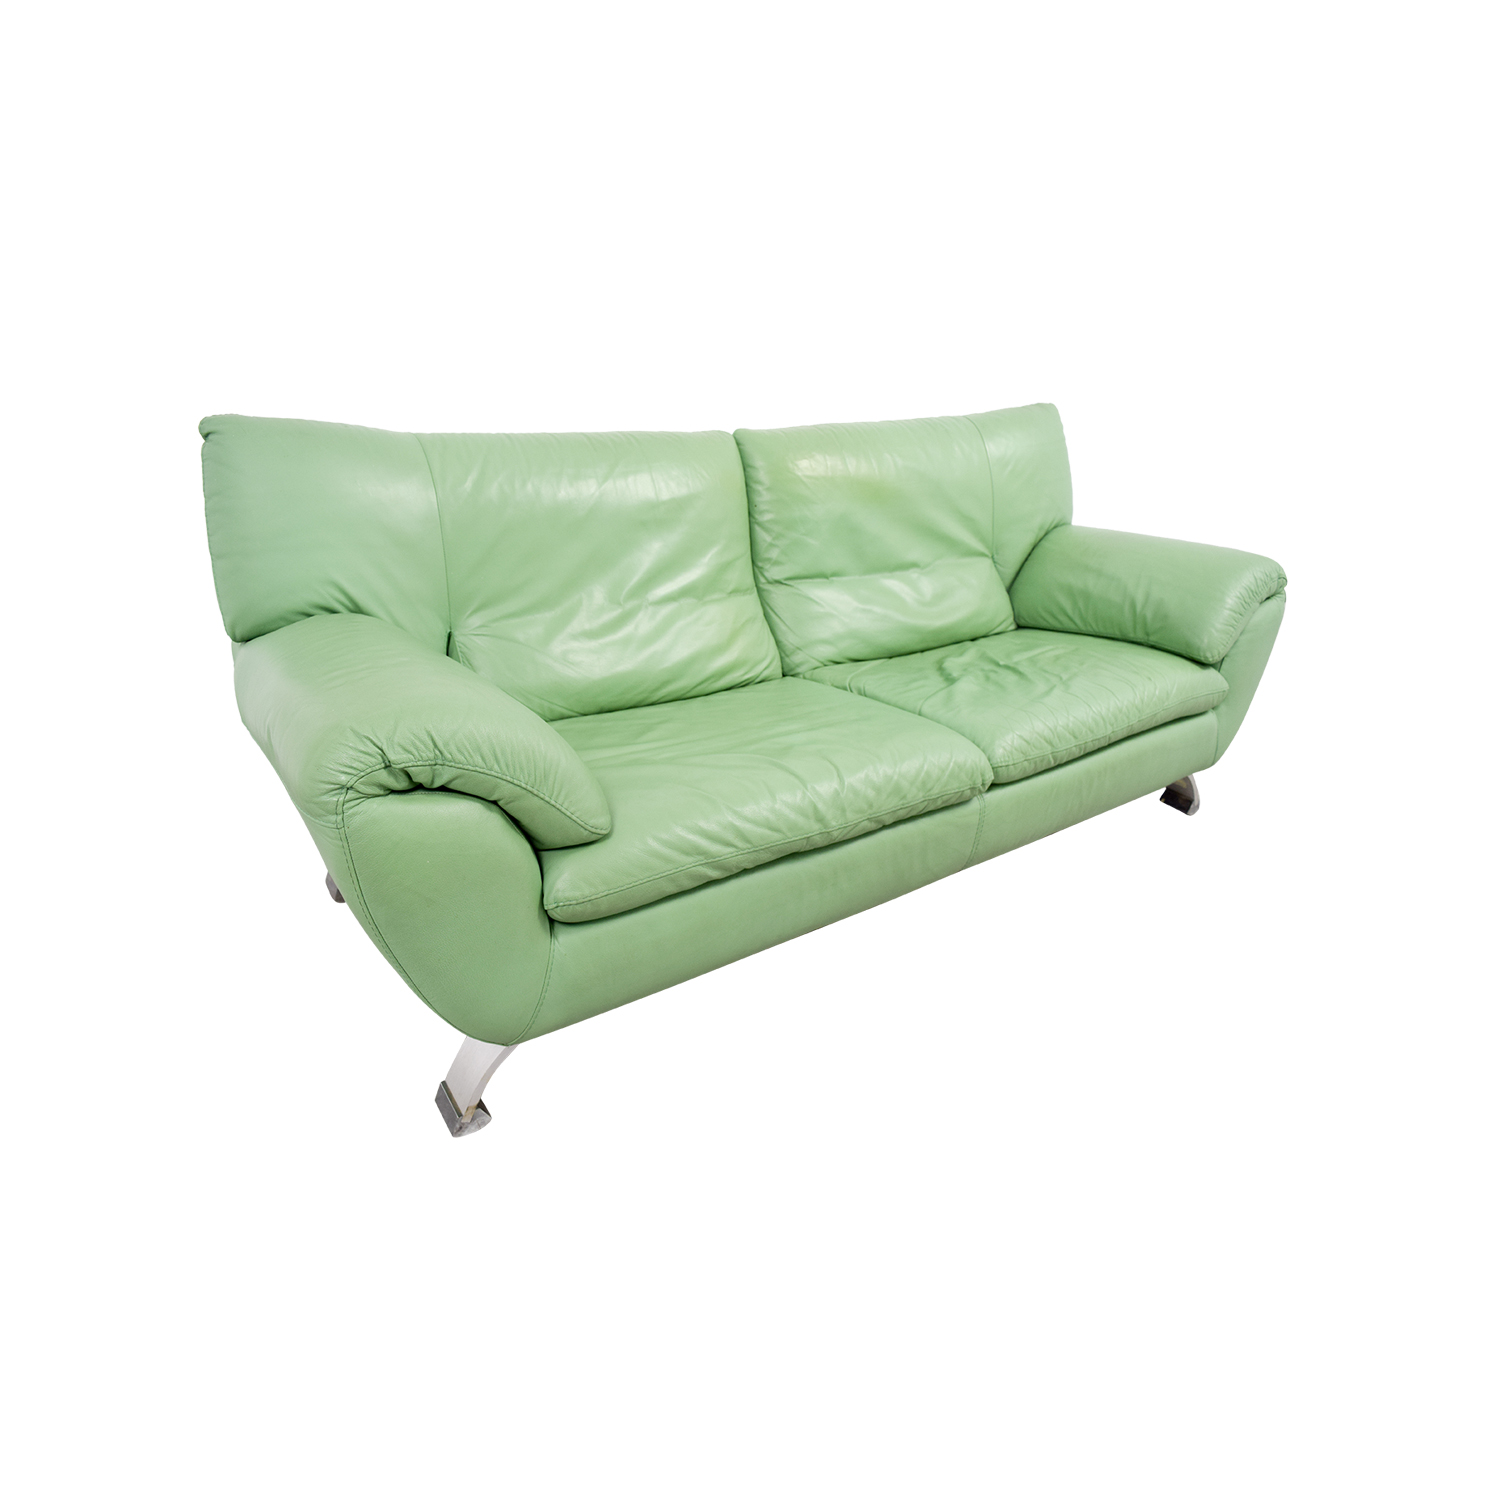 67 Off Nicoletti Home Nicoletti Green Leather Sofa Sofas